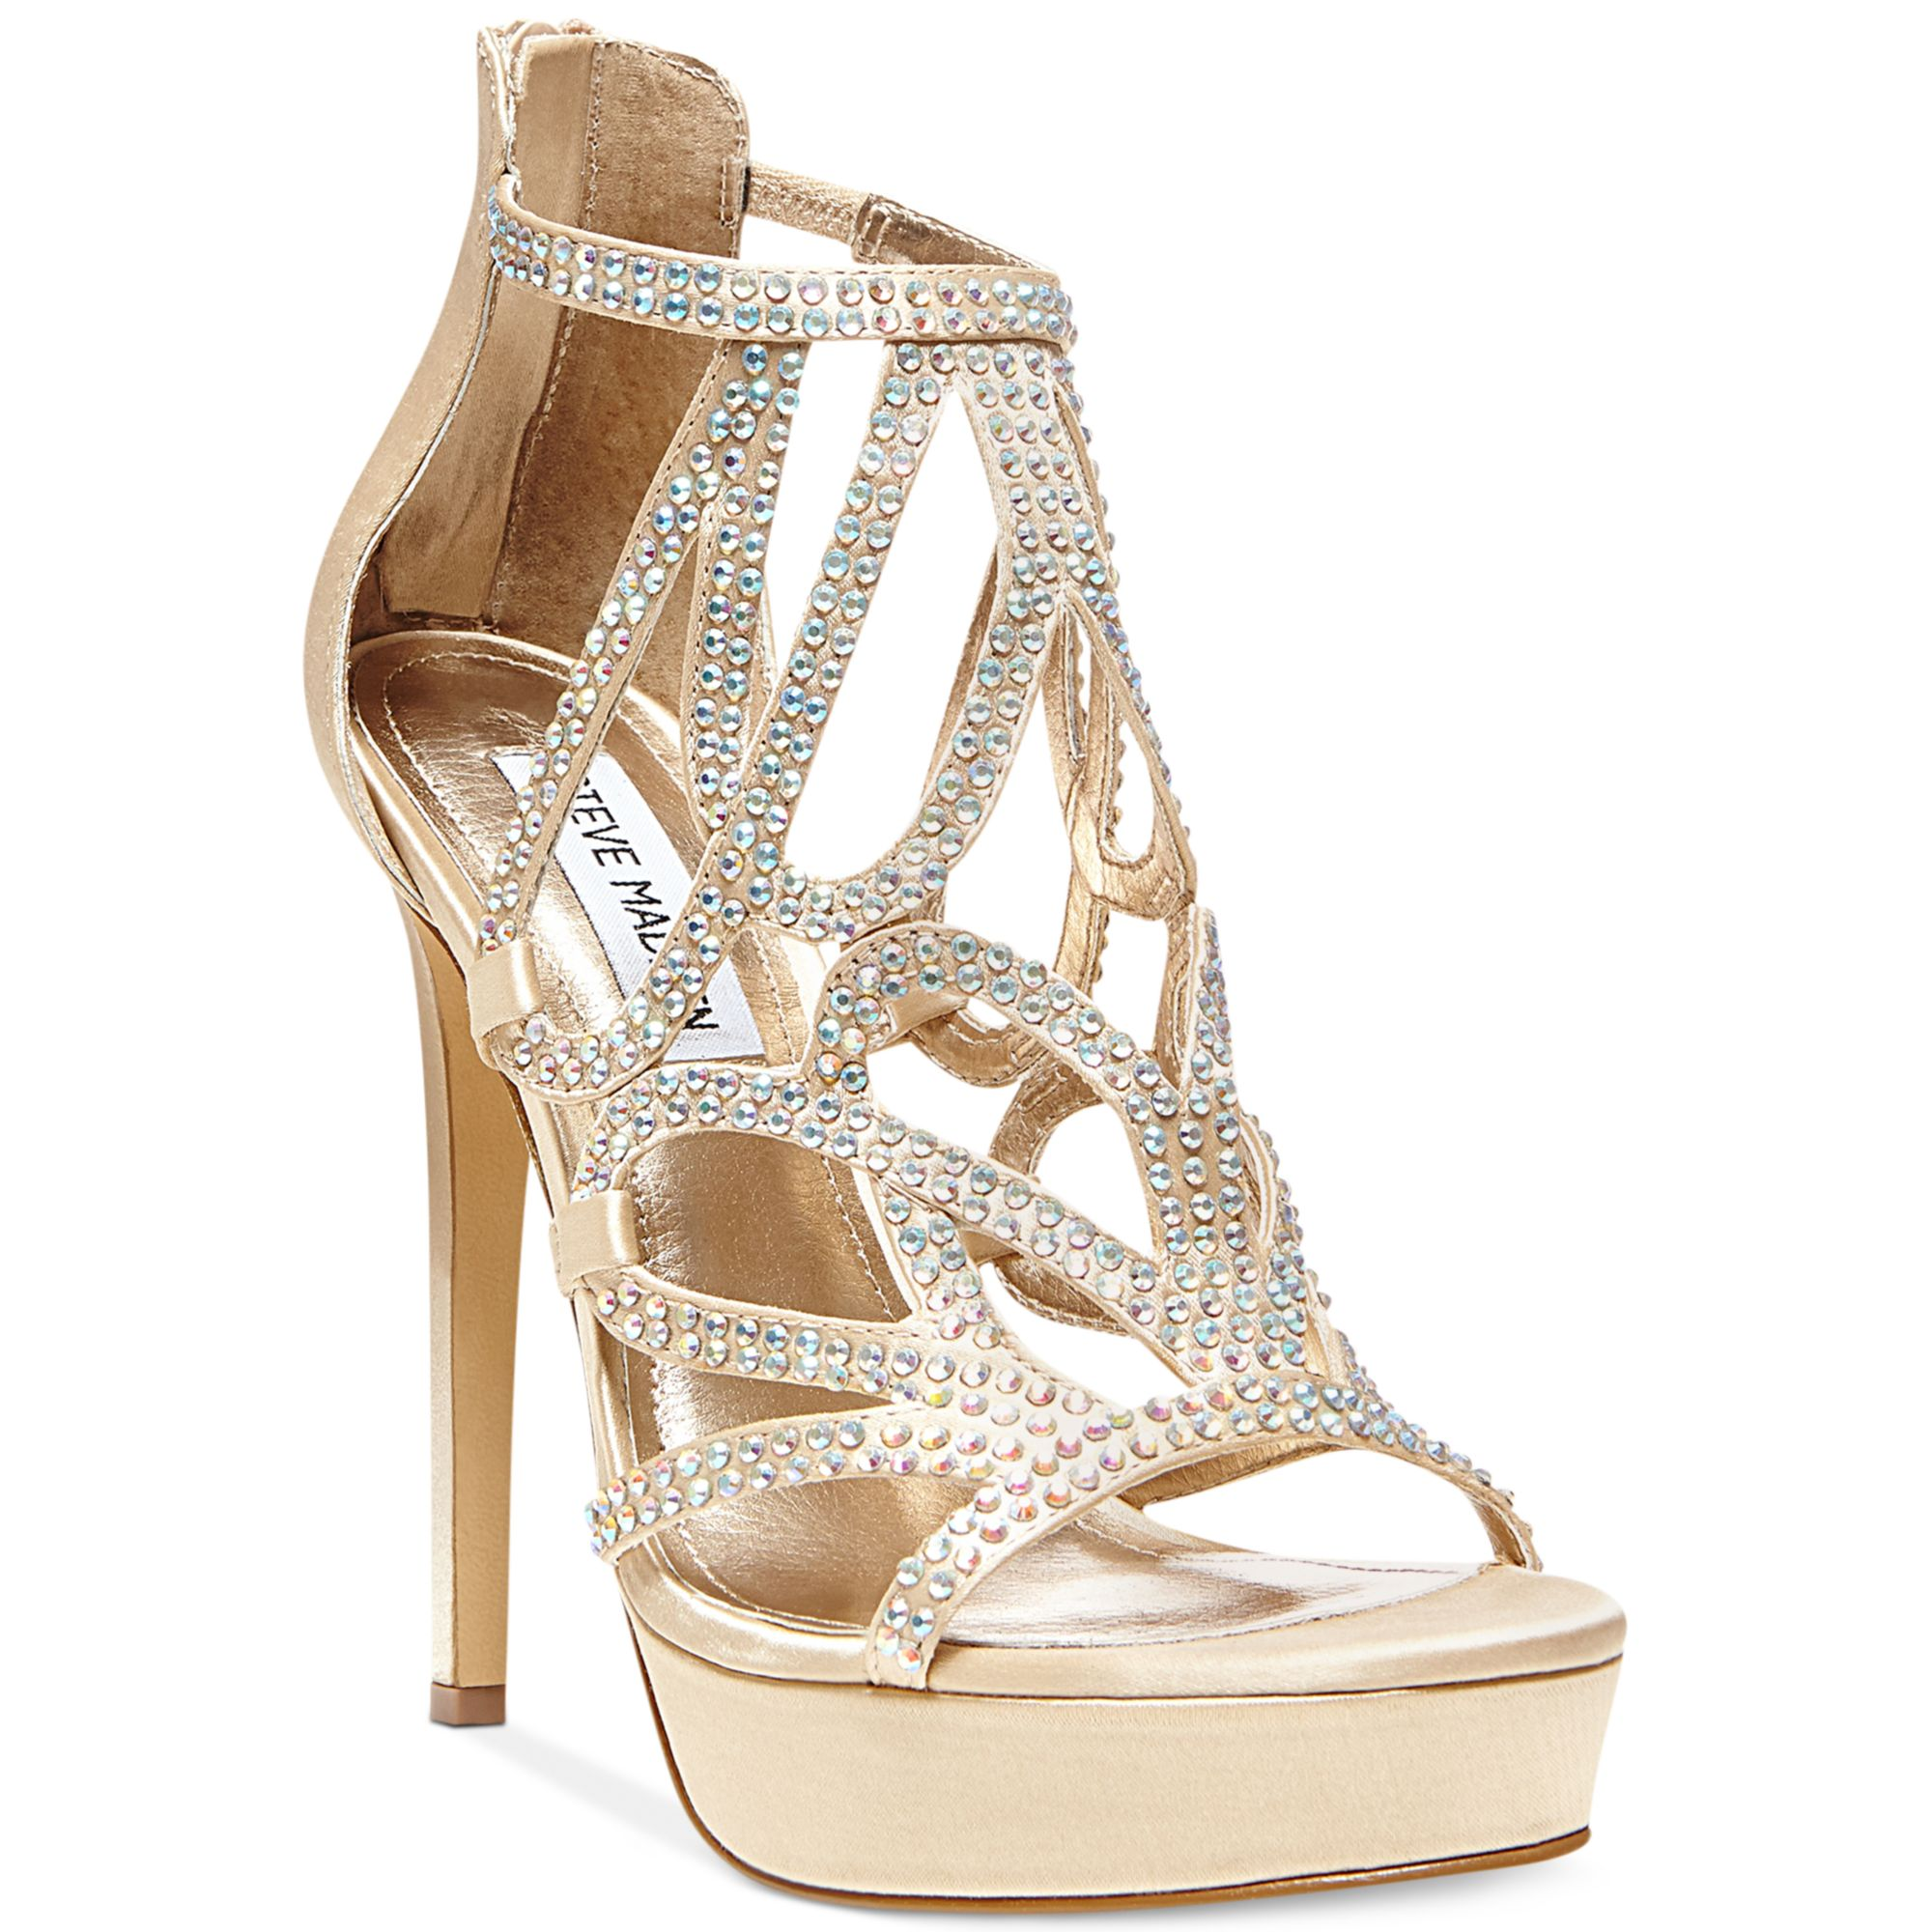 5103879b93e8 Lyst - Steve Madden Singer Platform Evening Sandals in Metallic